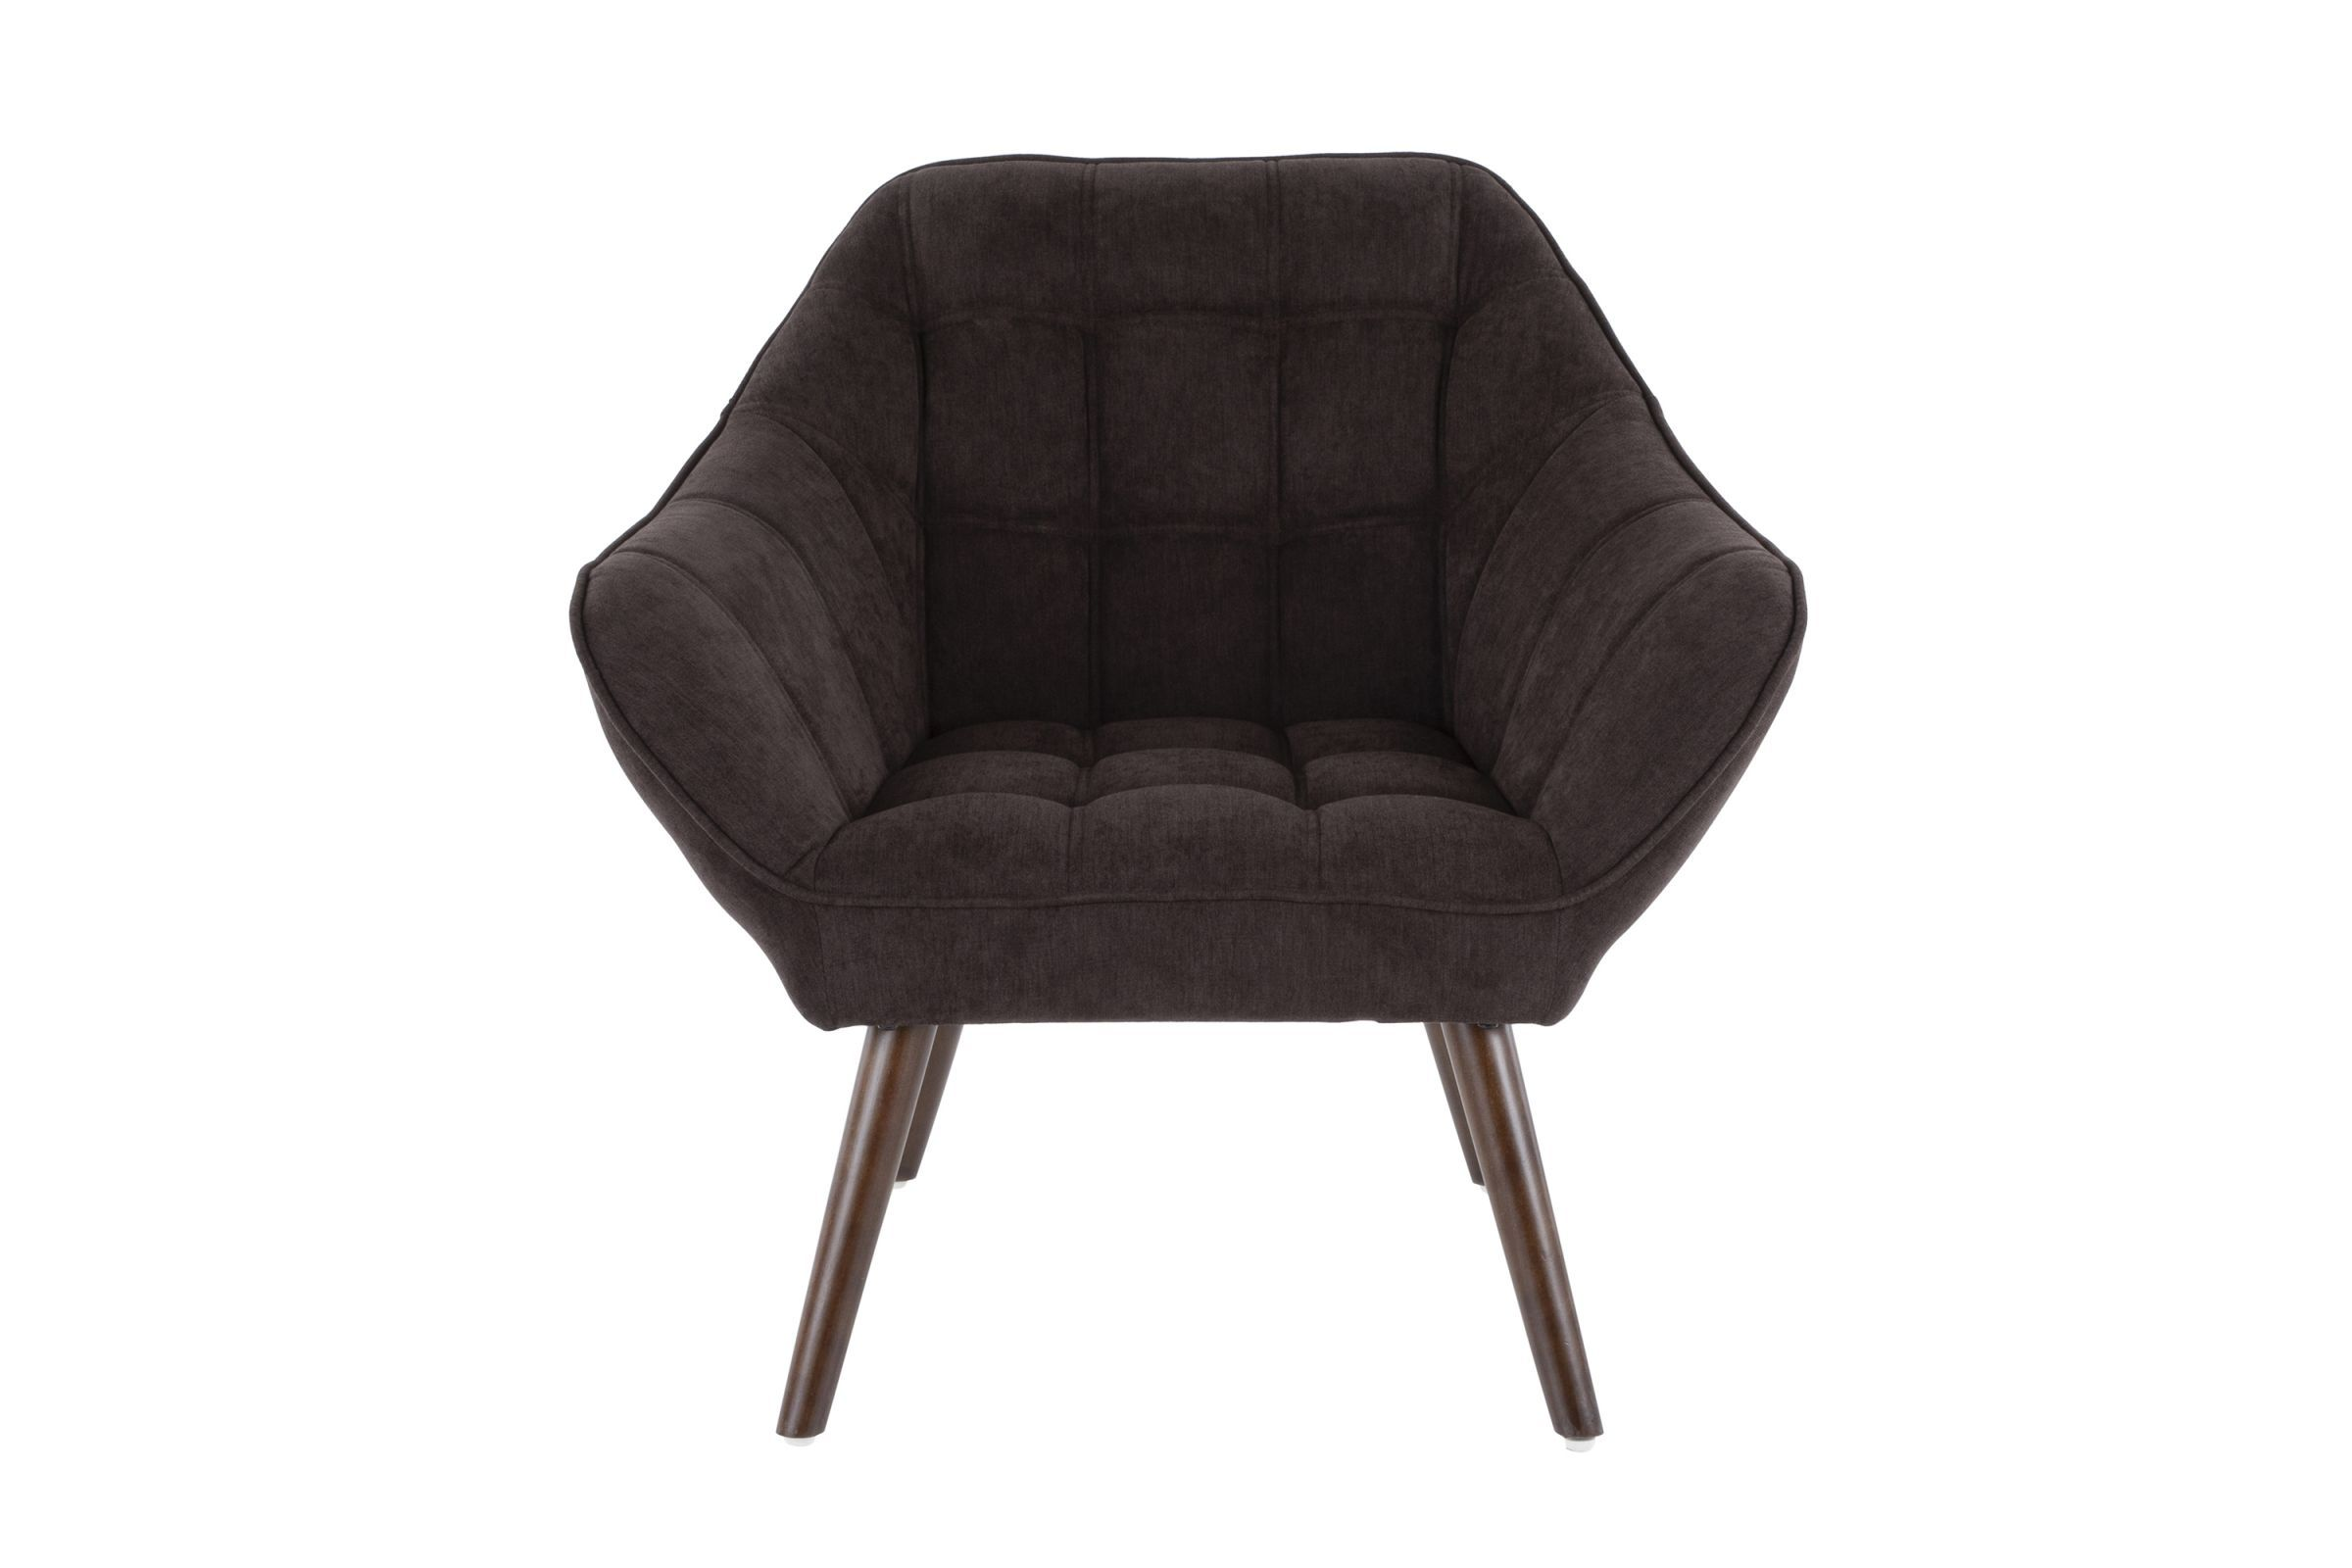 Boulder Mid Century Modern Accent Chair In Charcoal Fabric By